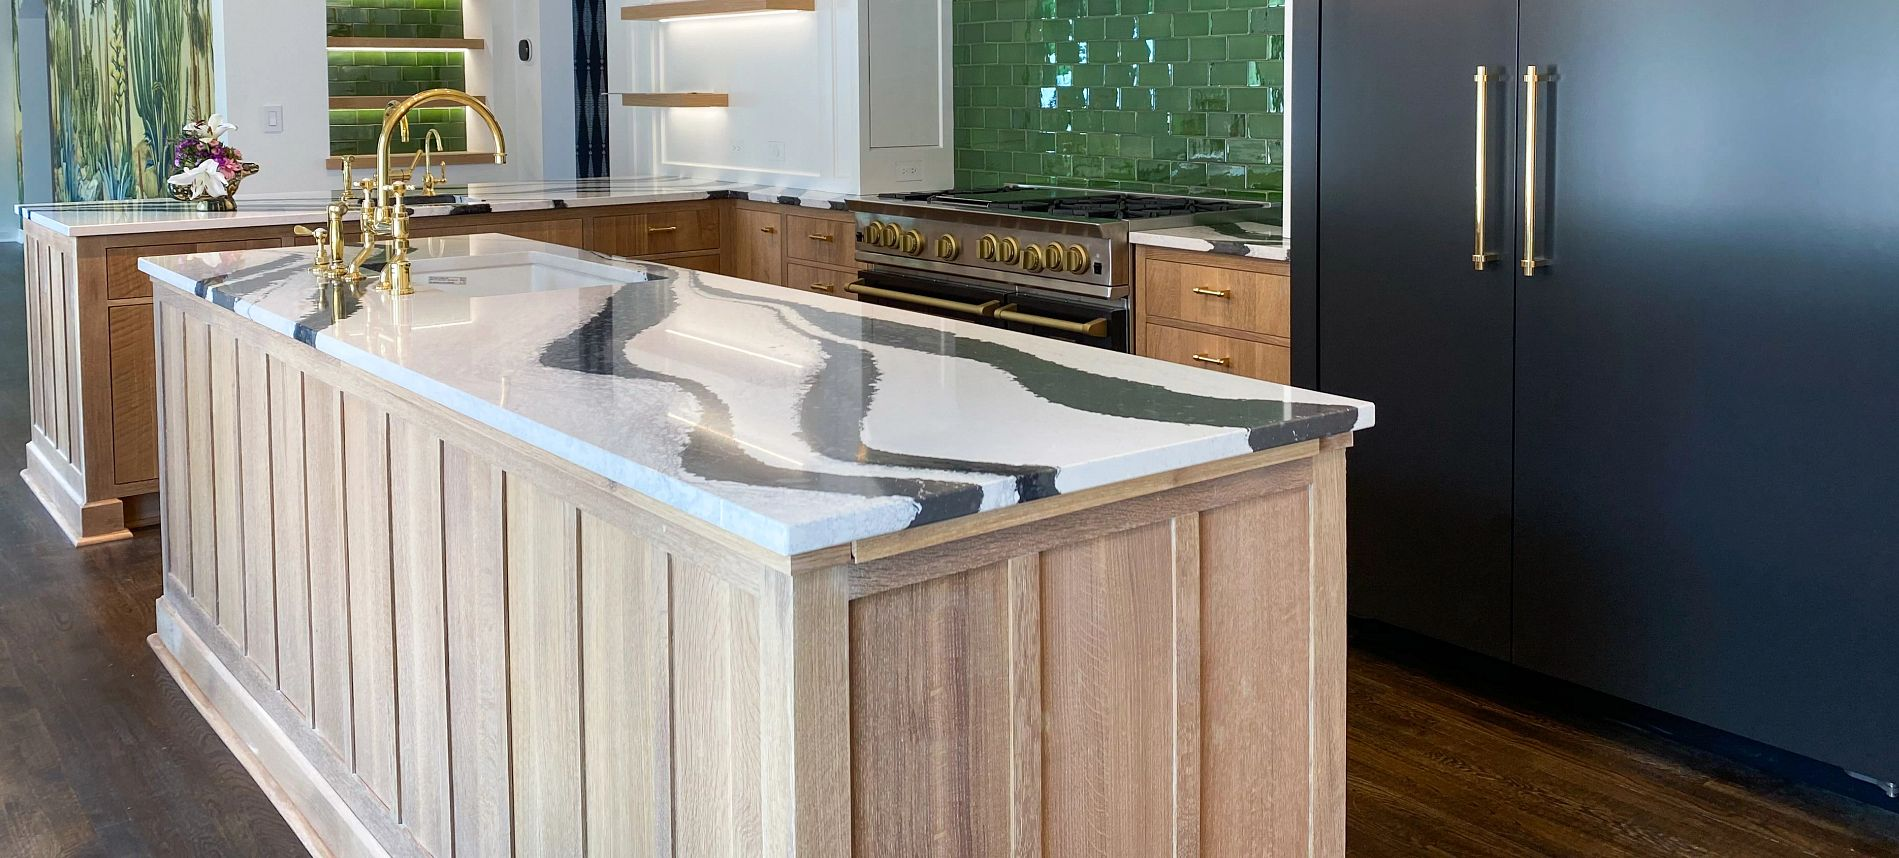 Cambria-Quartz-Countertop-Brittanicca-kitchen